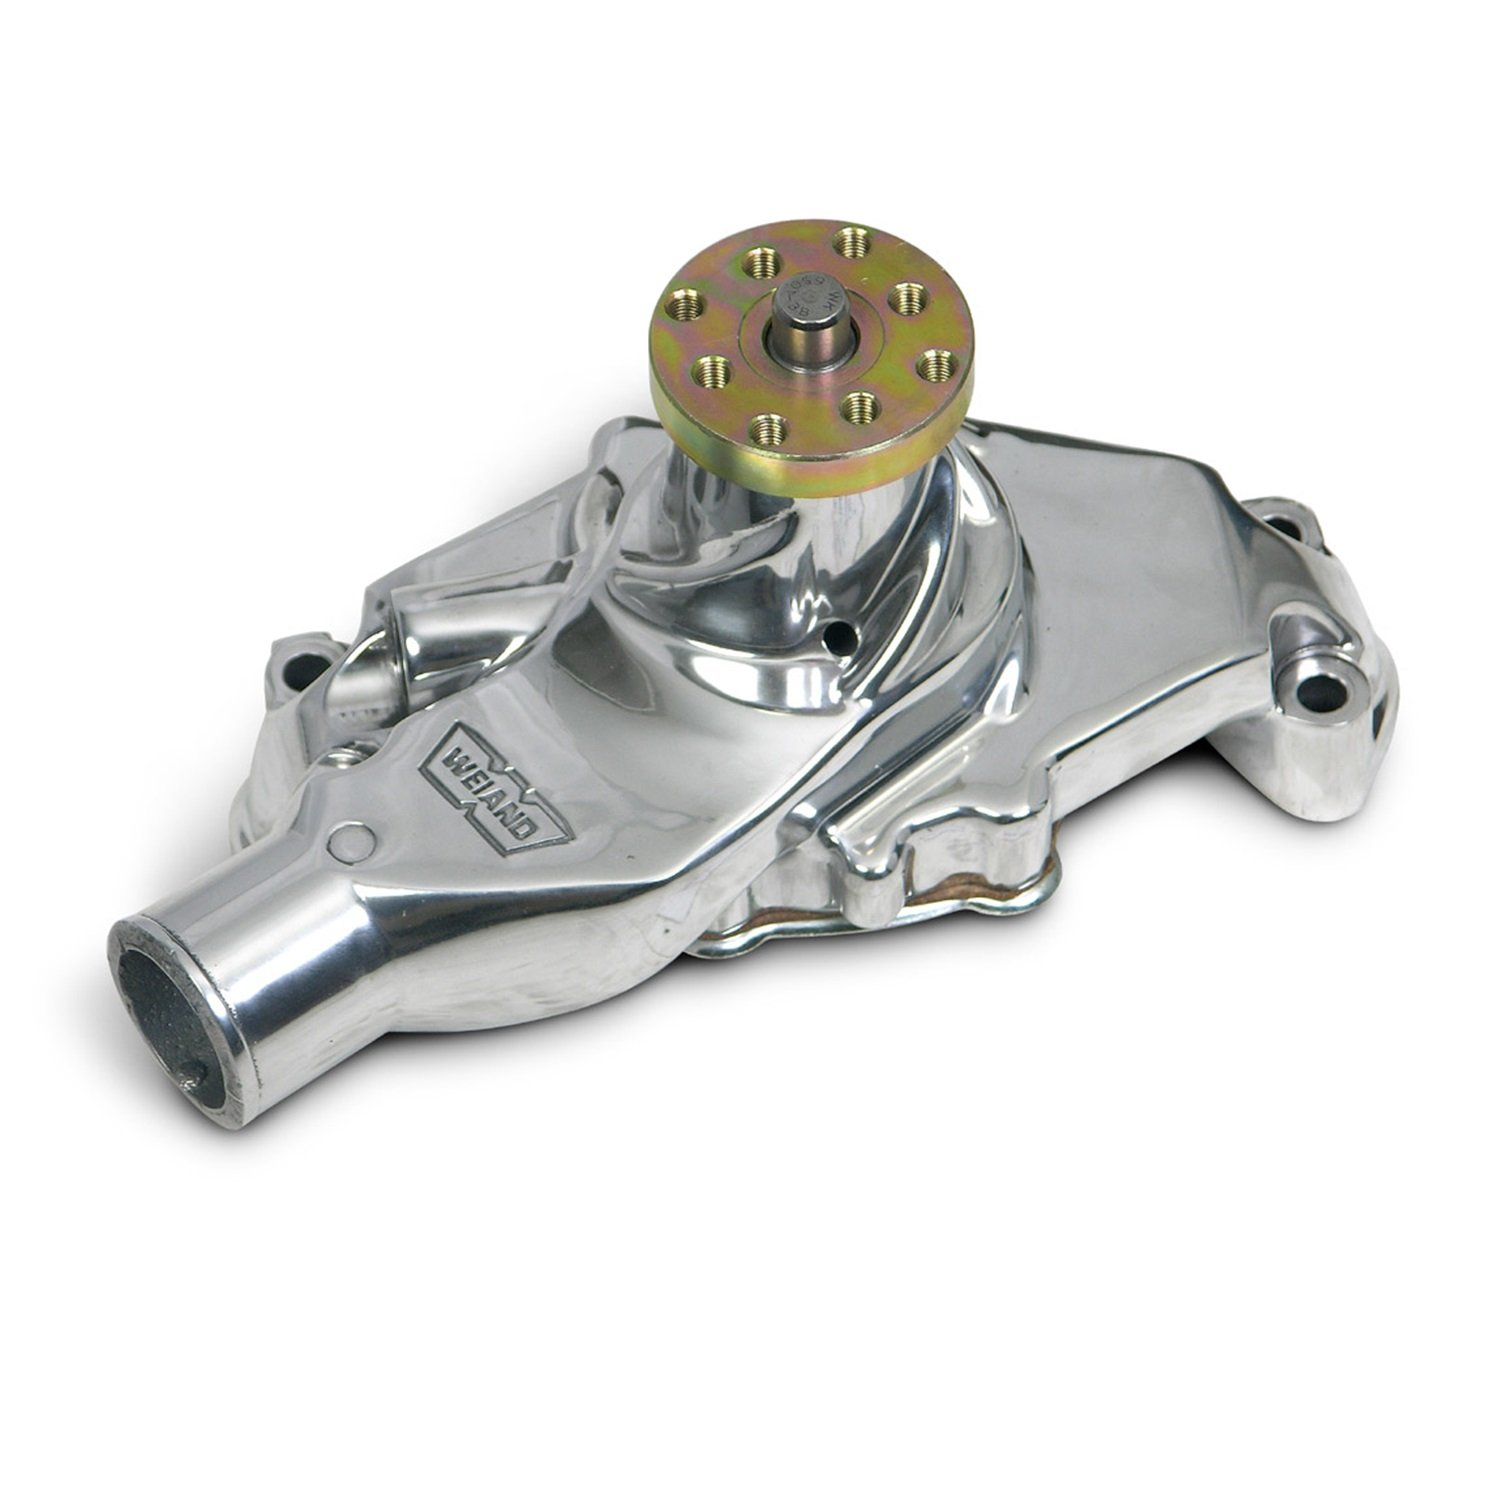 Weiand 9208P Action +Plus Water Pump by Weiand